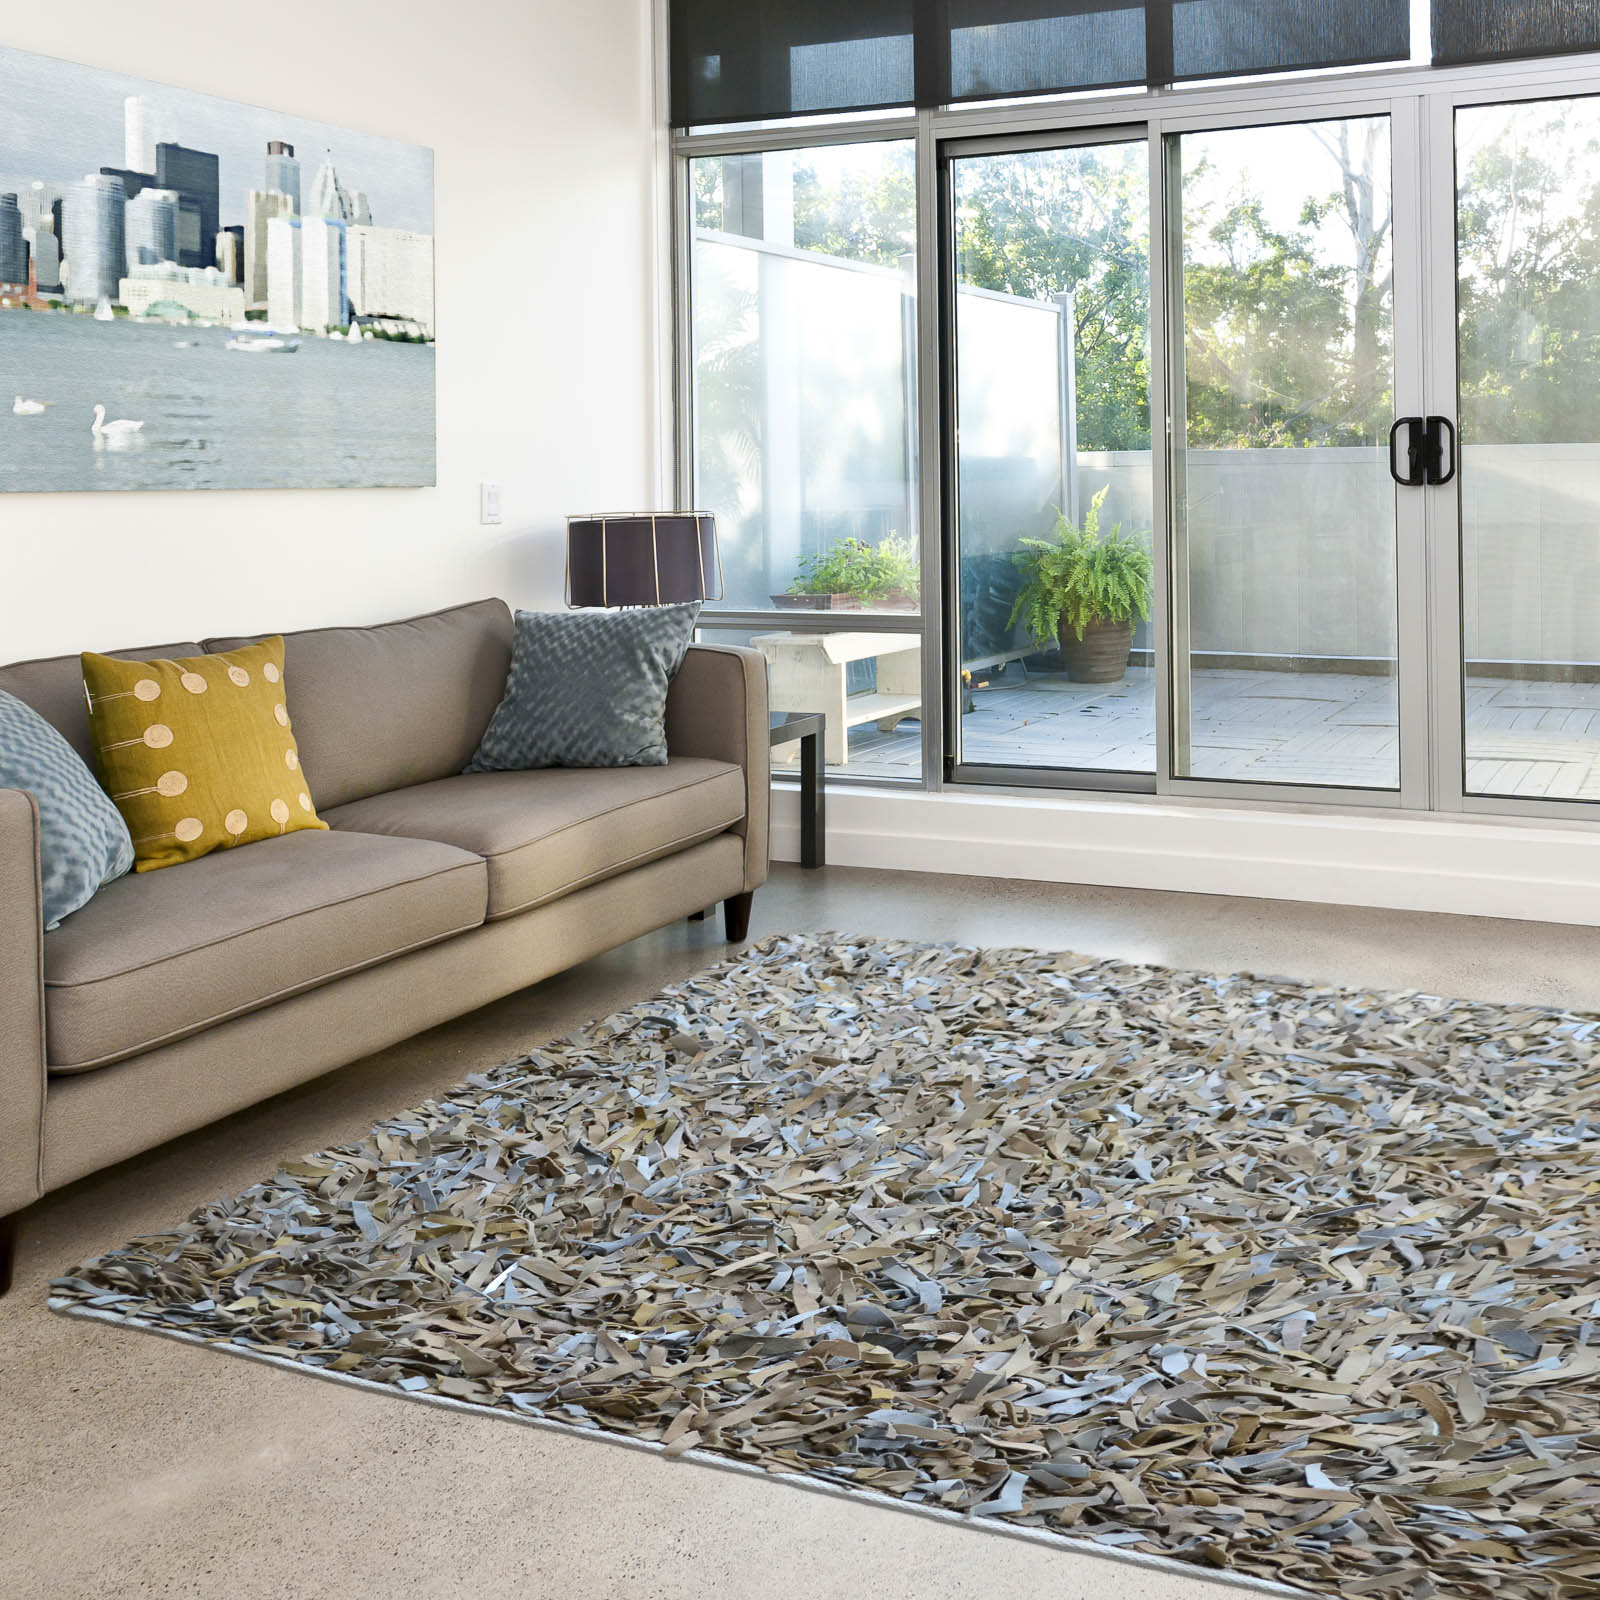 Leather Shaggy Rugs in Beige